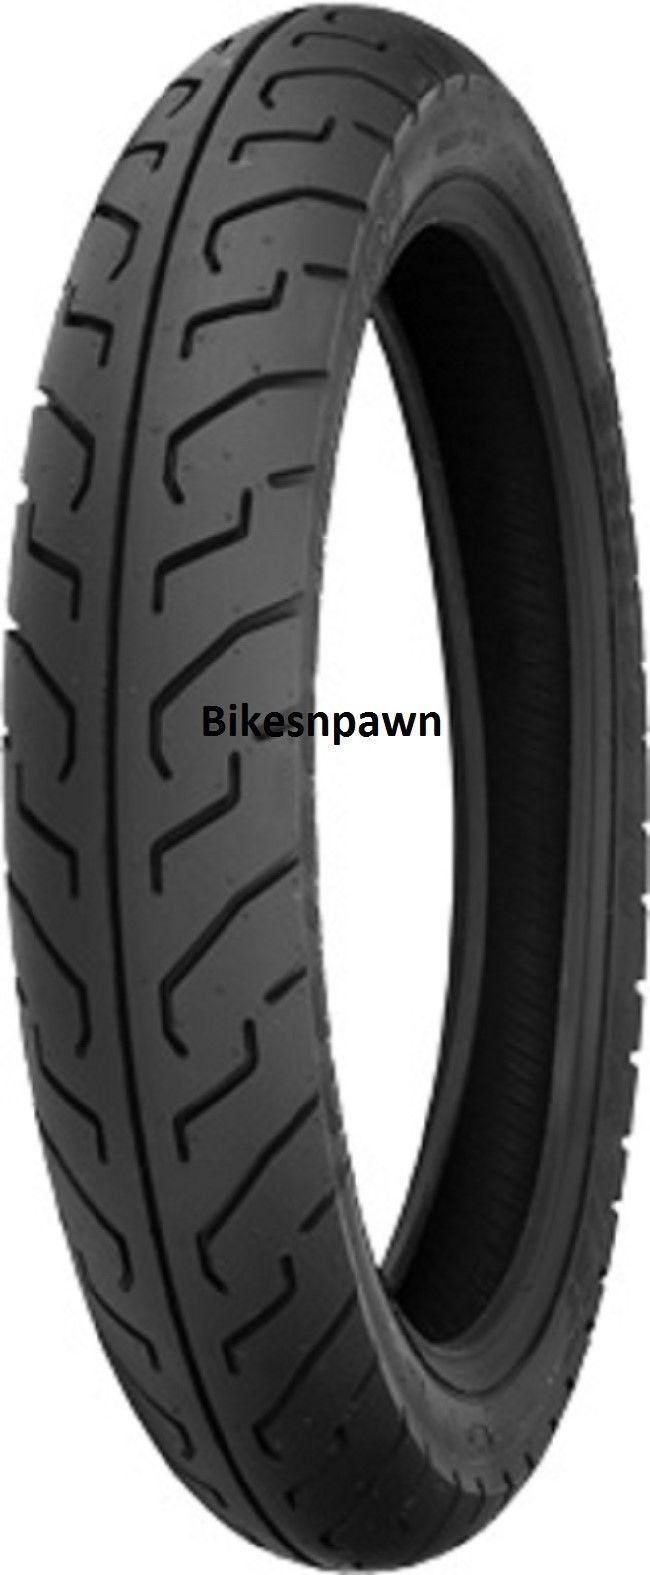 New Shinko 712 100/90-18 Front Tire 56 H Tubeless